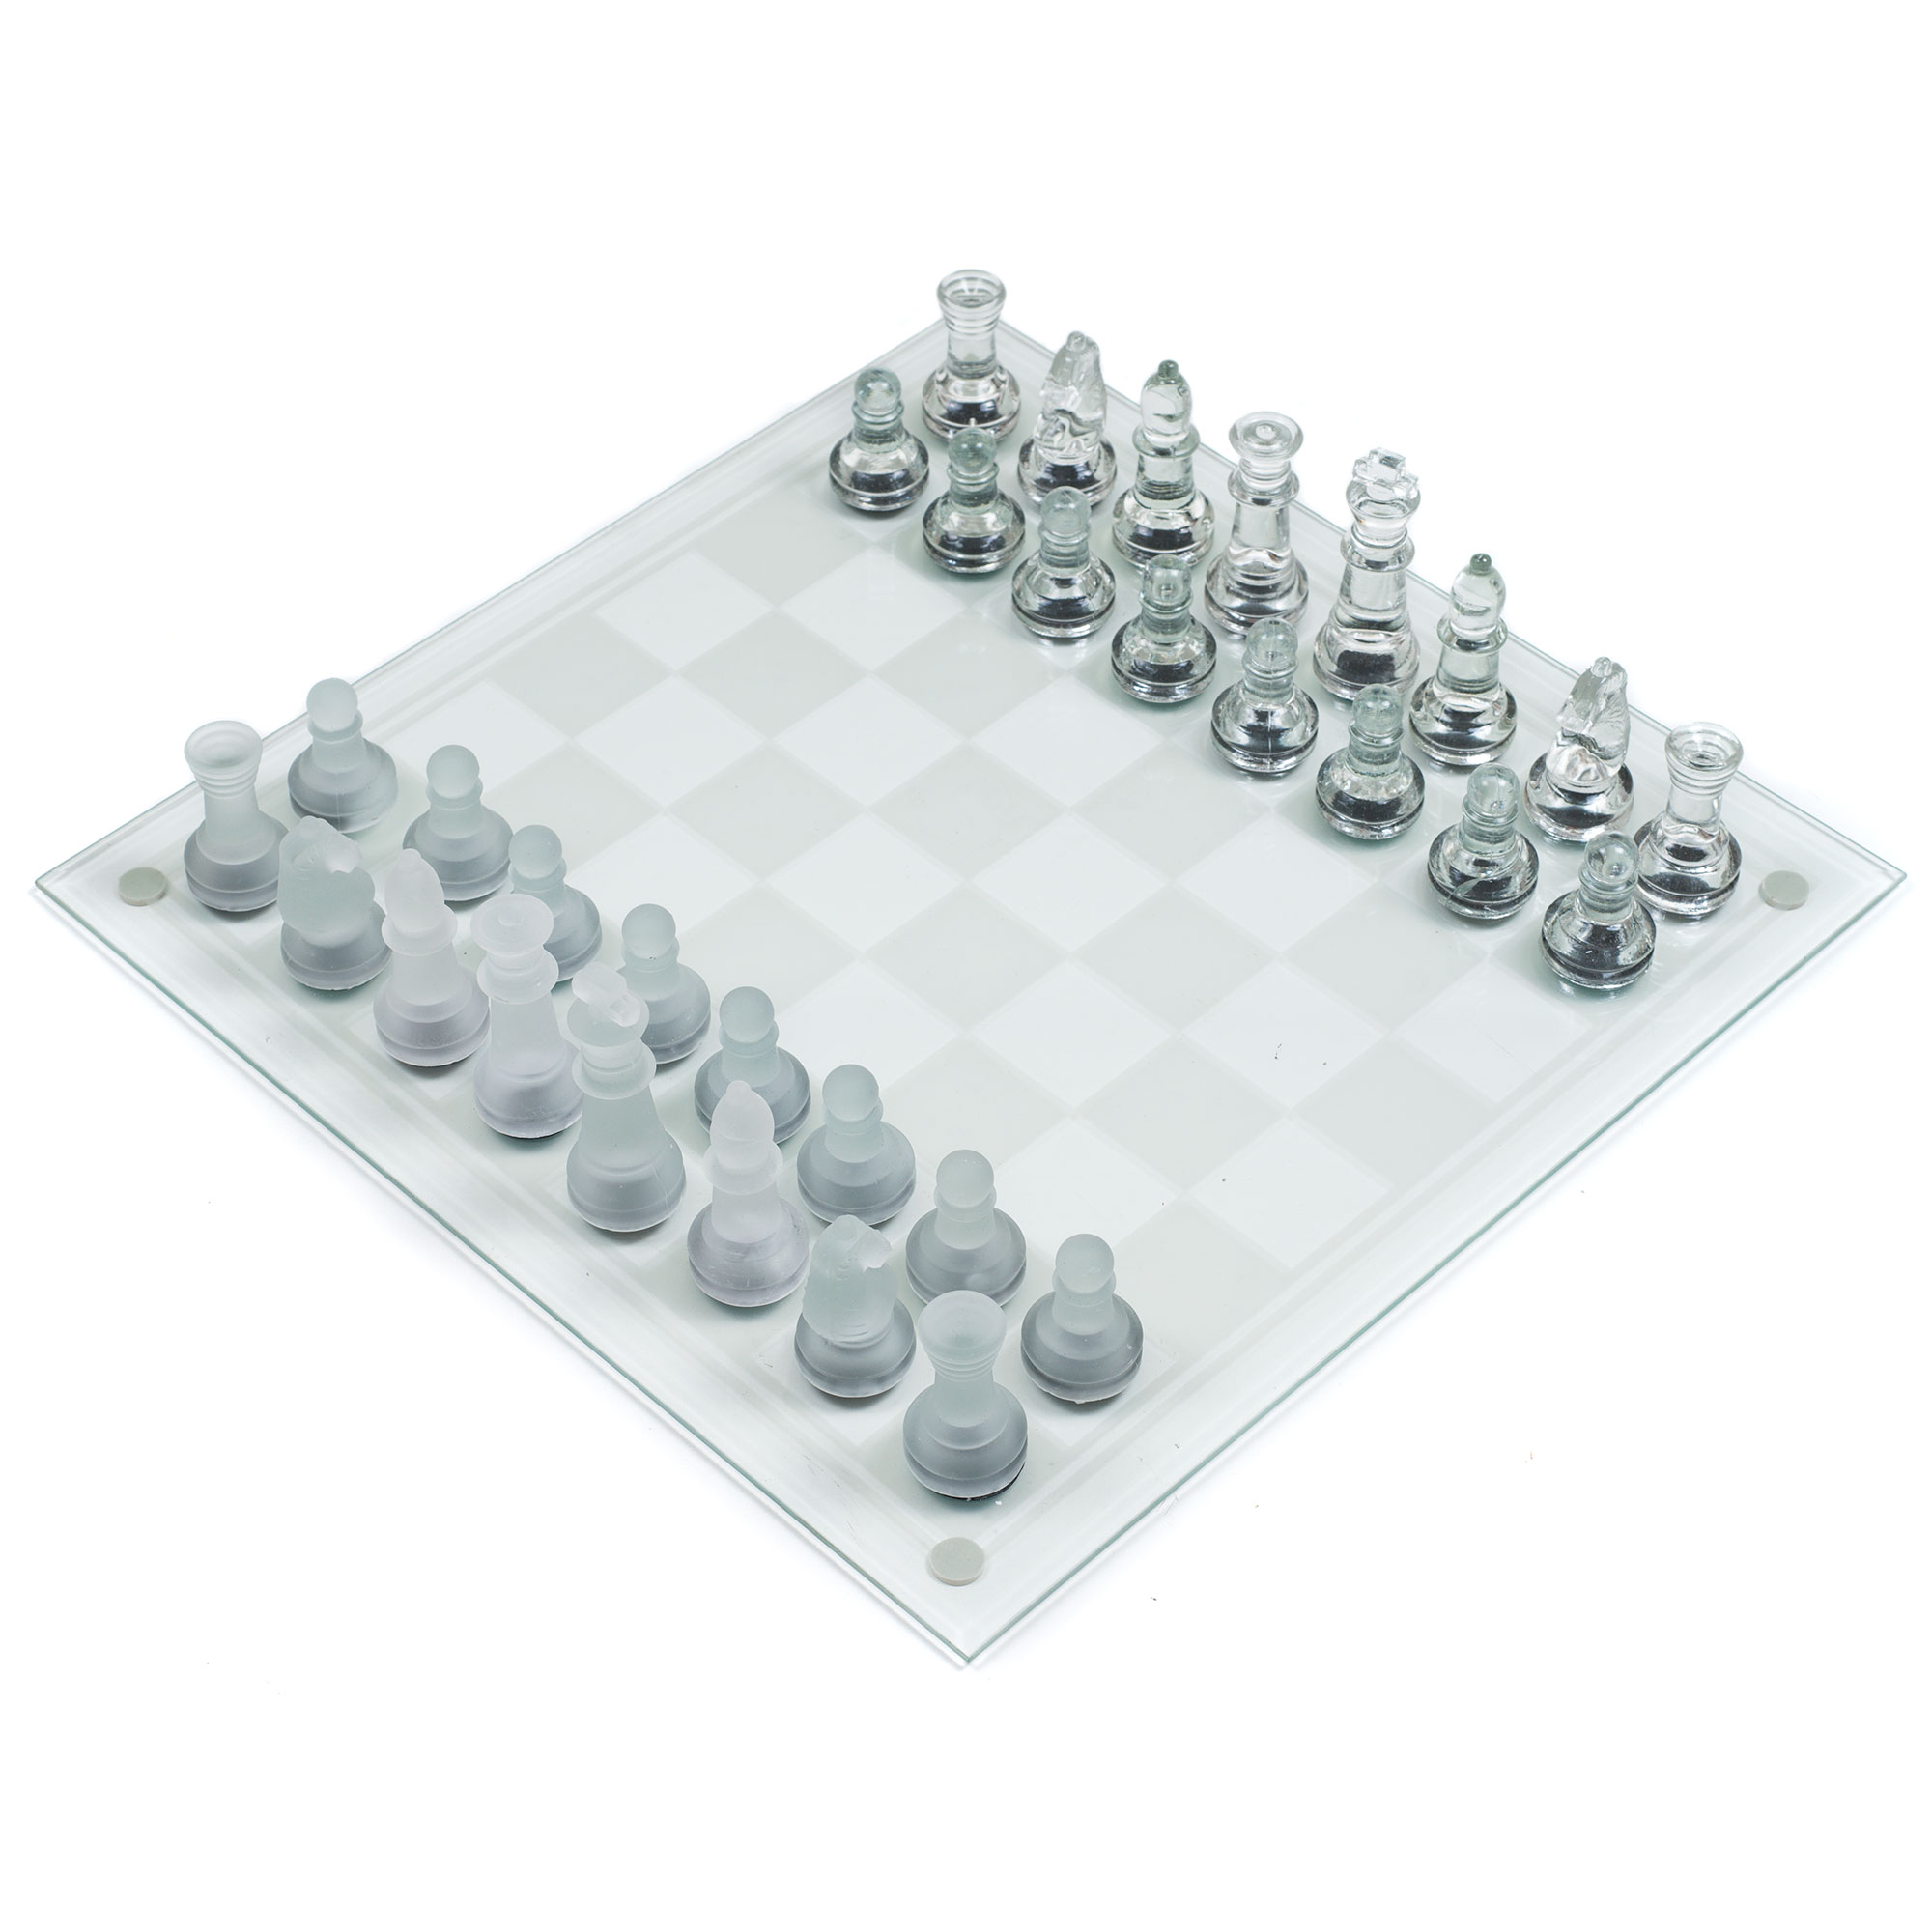 Deluxe Glass Chess Set by Hey! Play! by Trademark Global LLC